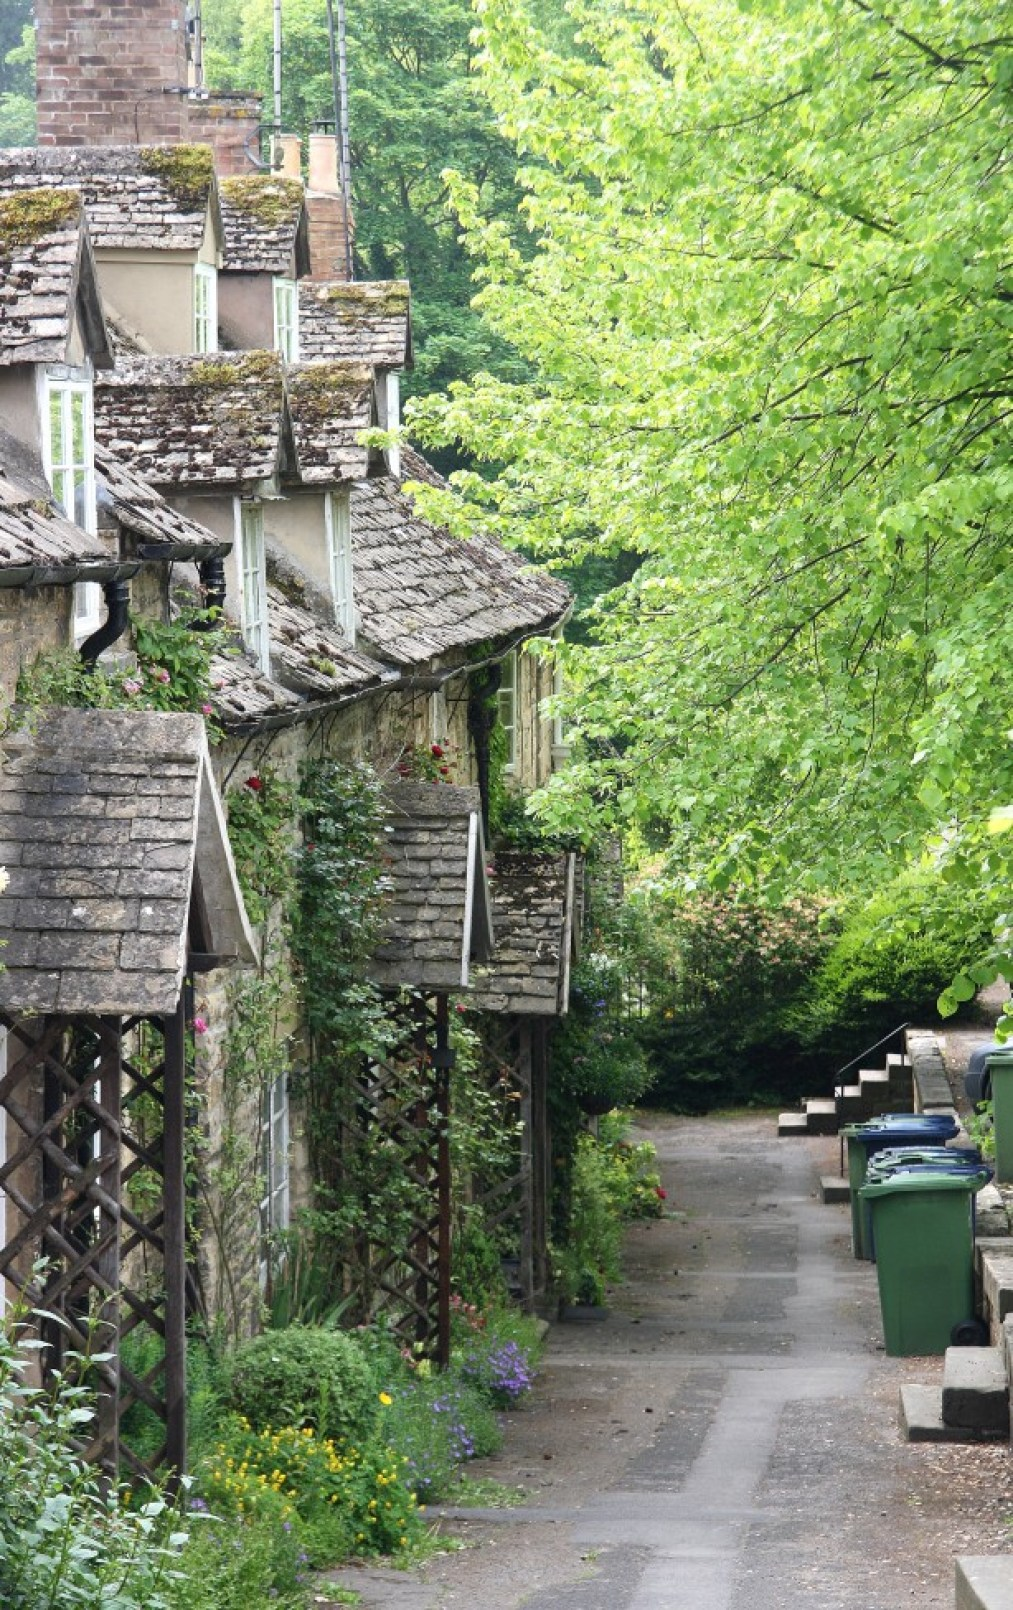 Winchcombe, Cotswolds